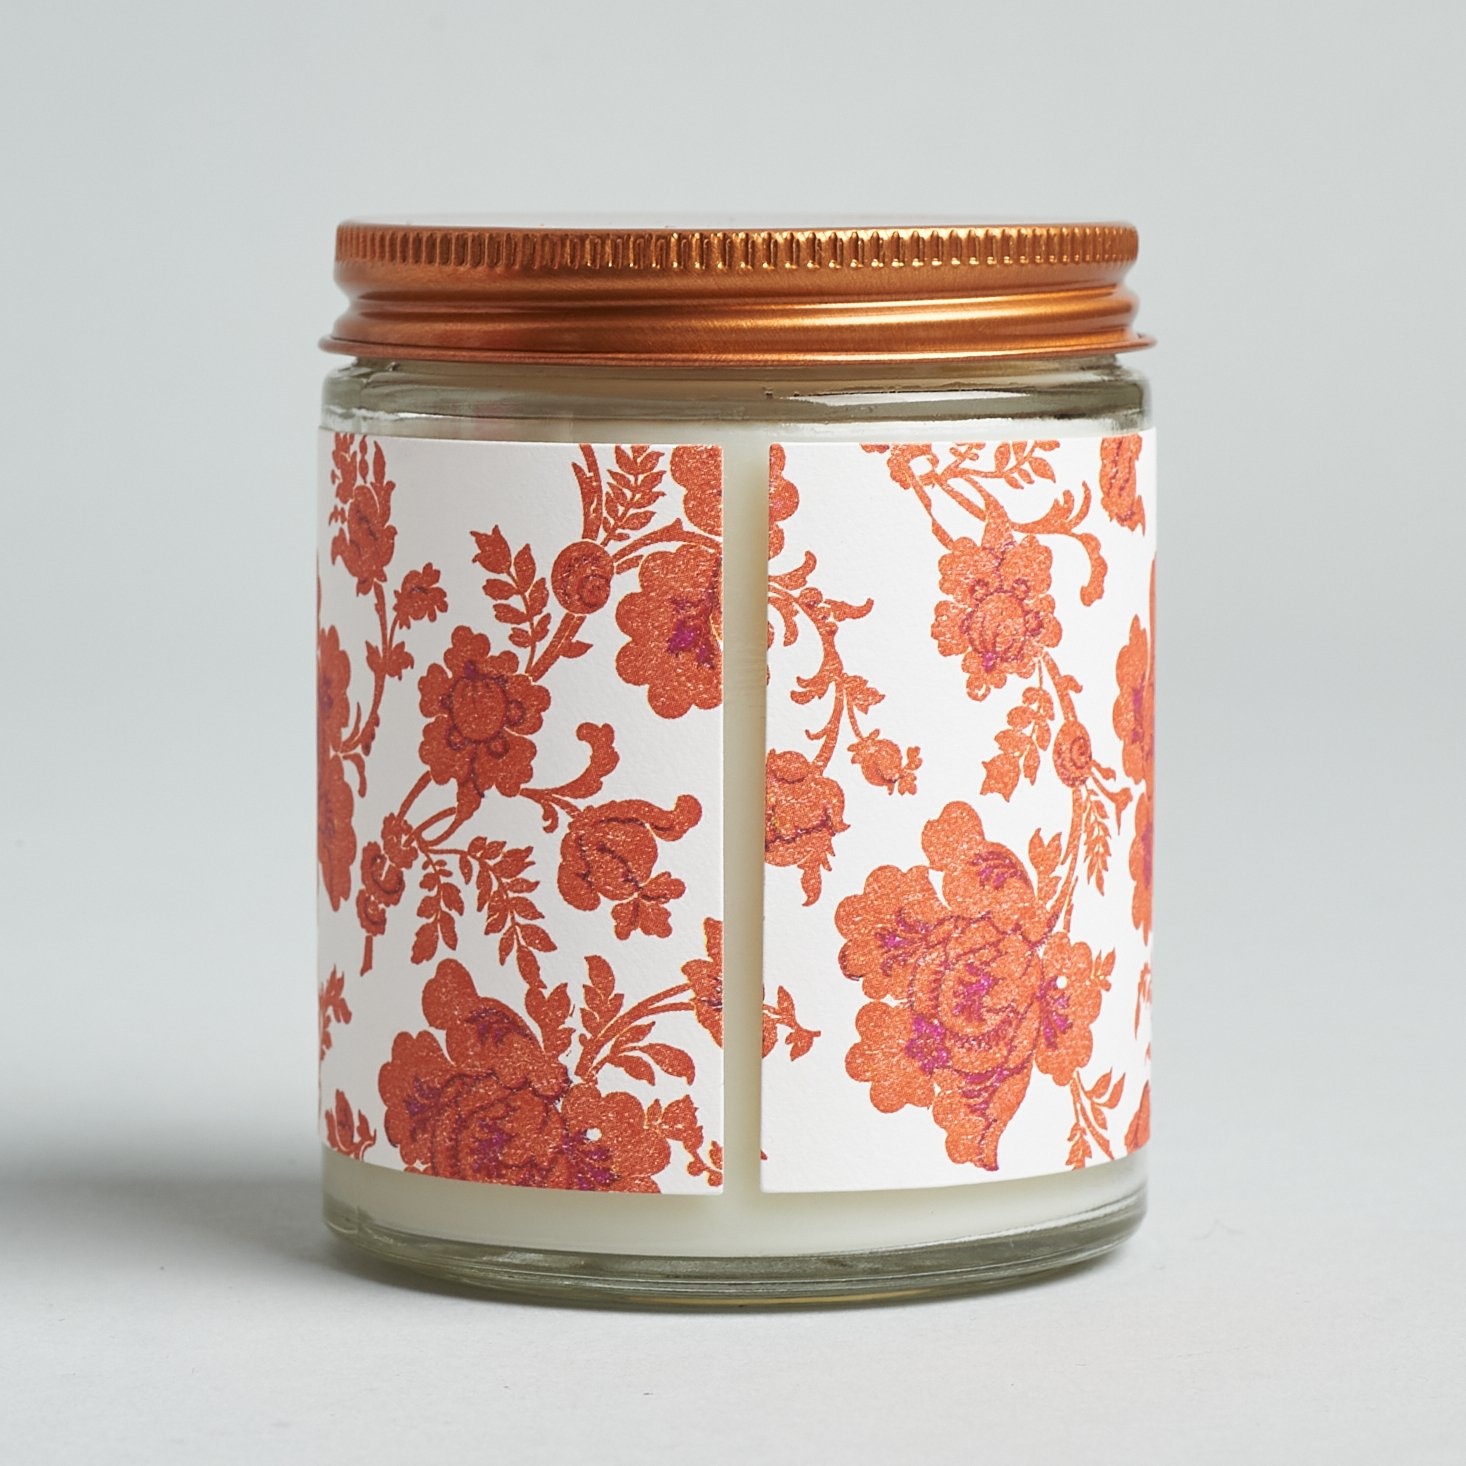 Margot Elena Summer 2021 Library of Flowers Candle